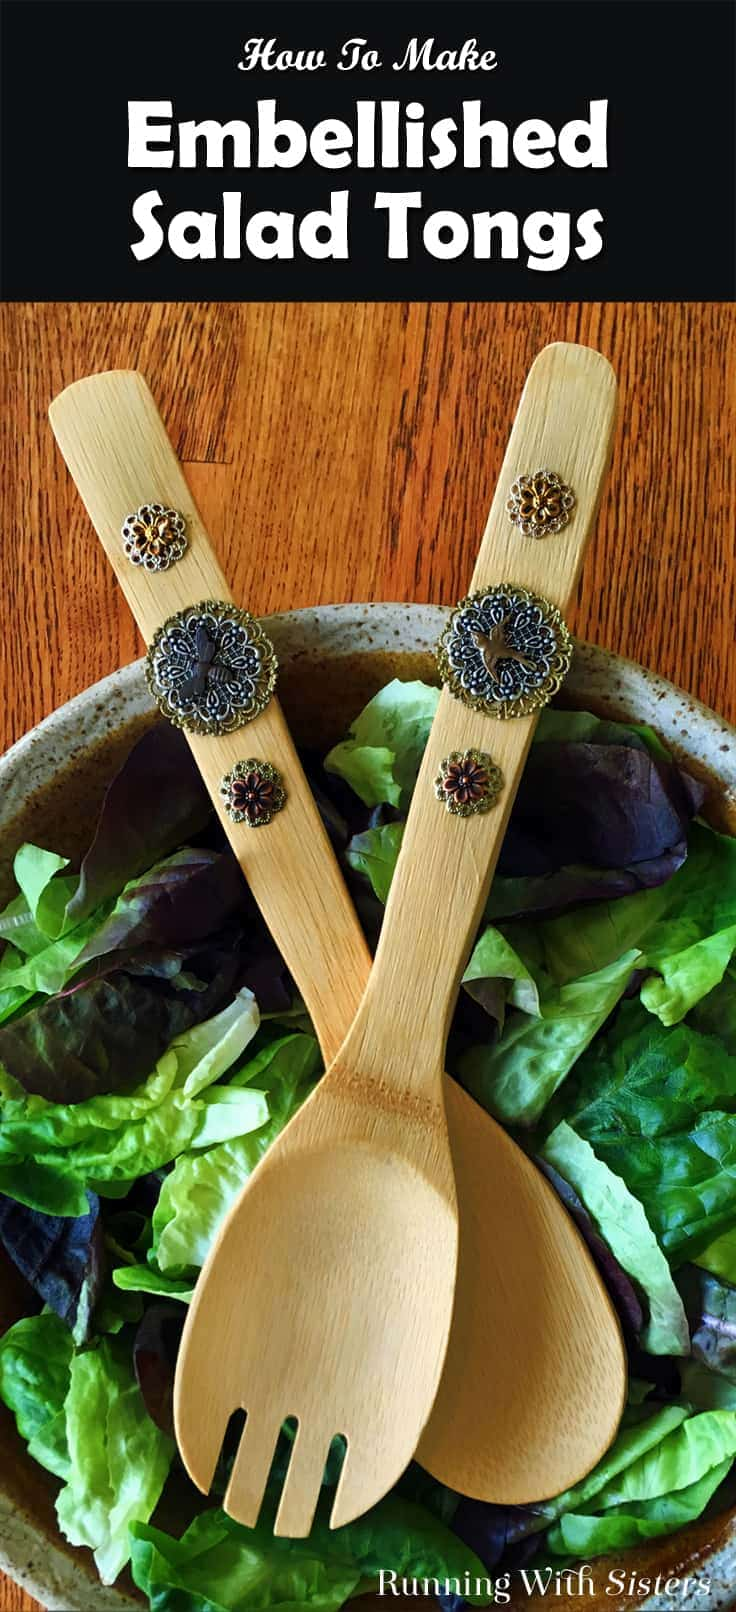 Create Gifty Embellished Salad Tongs using metal filigrees and charms. We'll show you how with this video tutorials and step by step instructions.